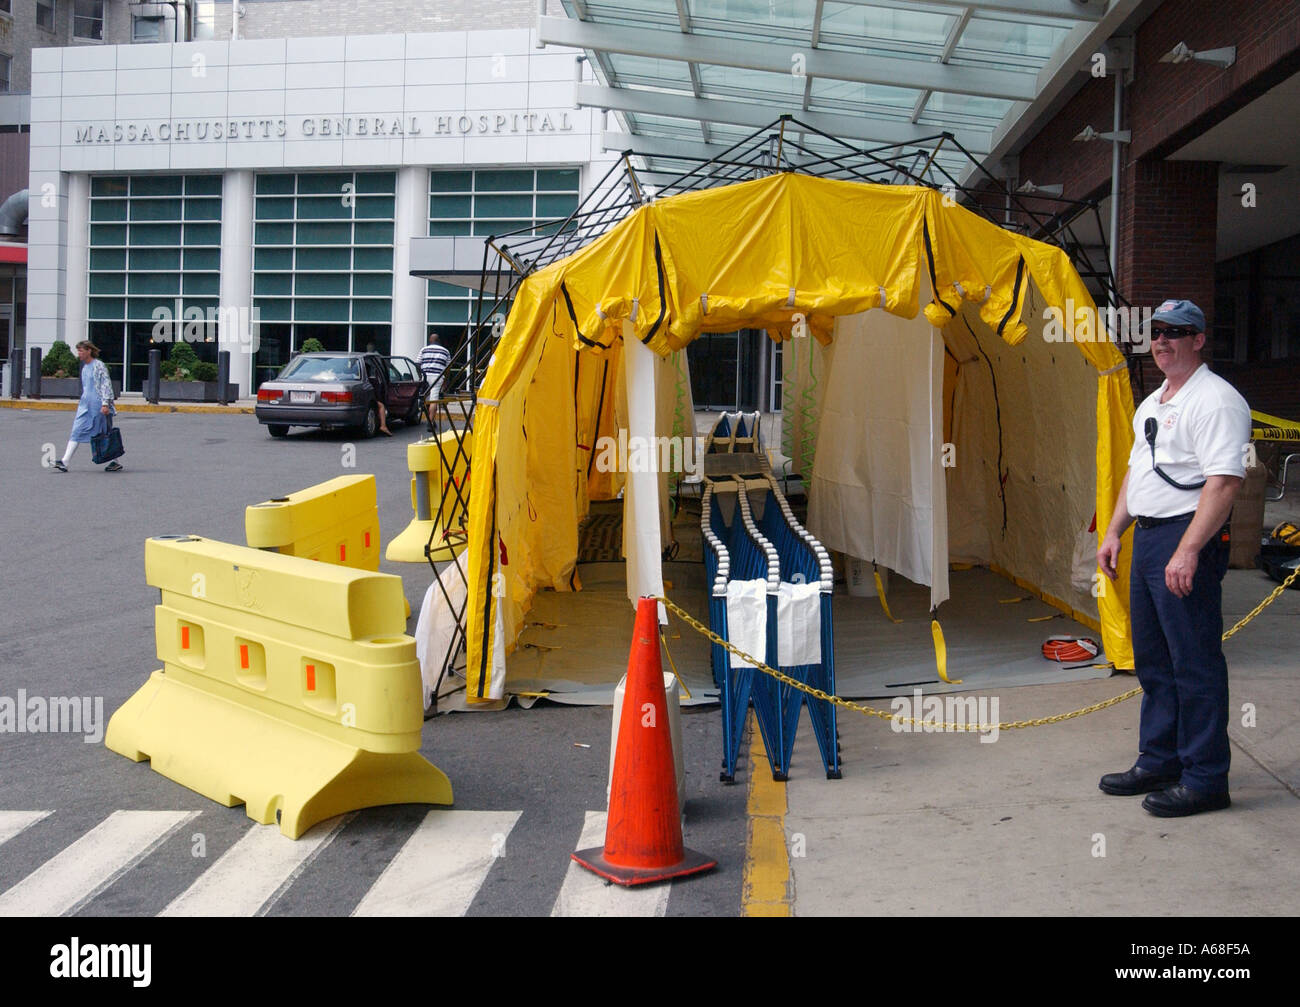 A chemical decontamination tent outside Massachusetts General Hospital & A chemical decontamination tent outside Massachusetts General ...